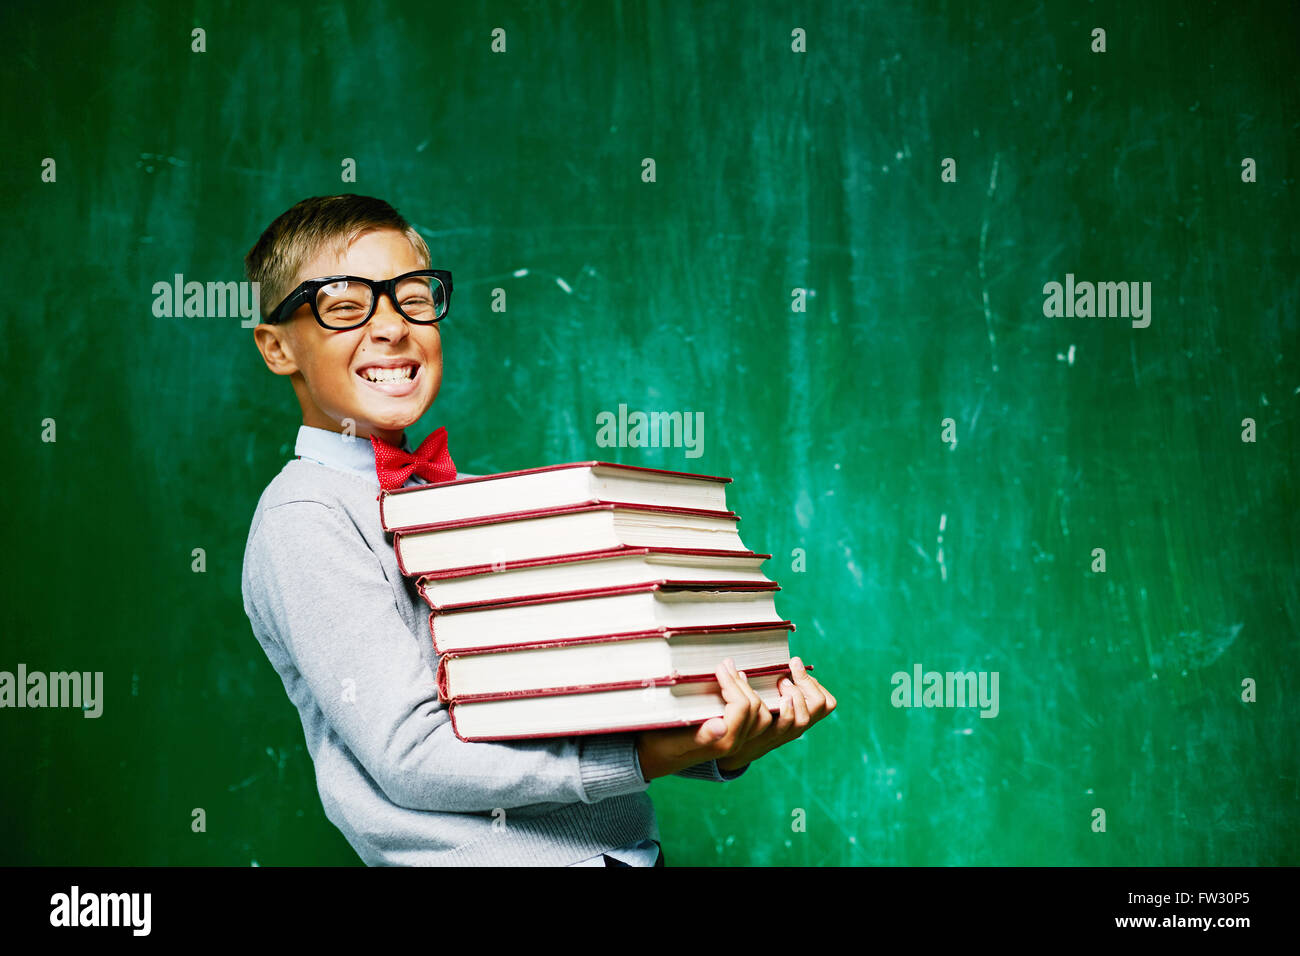 At school - Stock Image